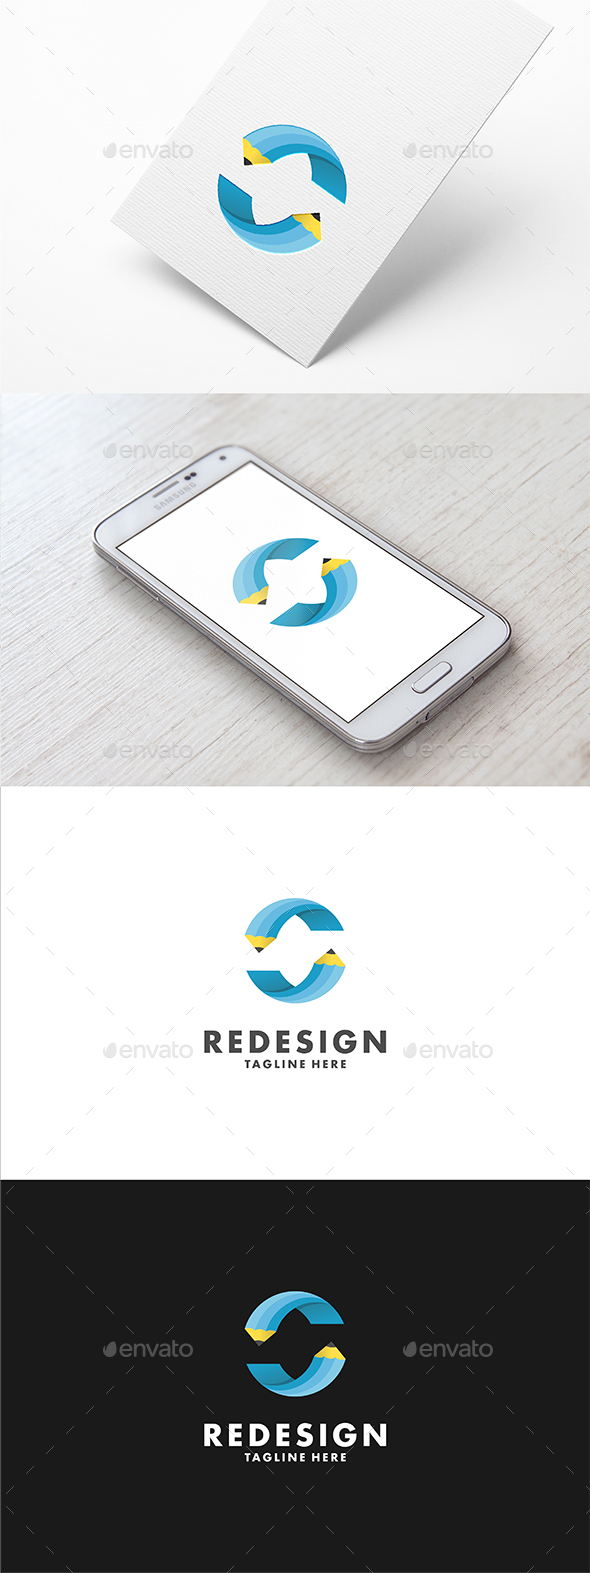 Redesign Logo Template - Objects Logo Templates